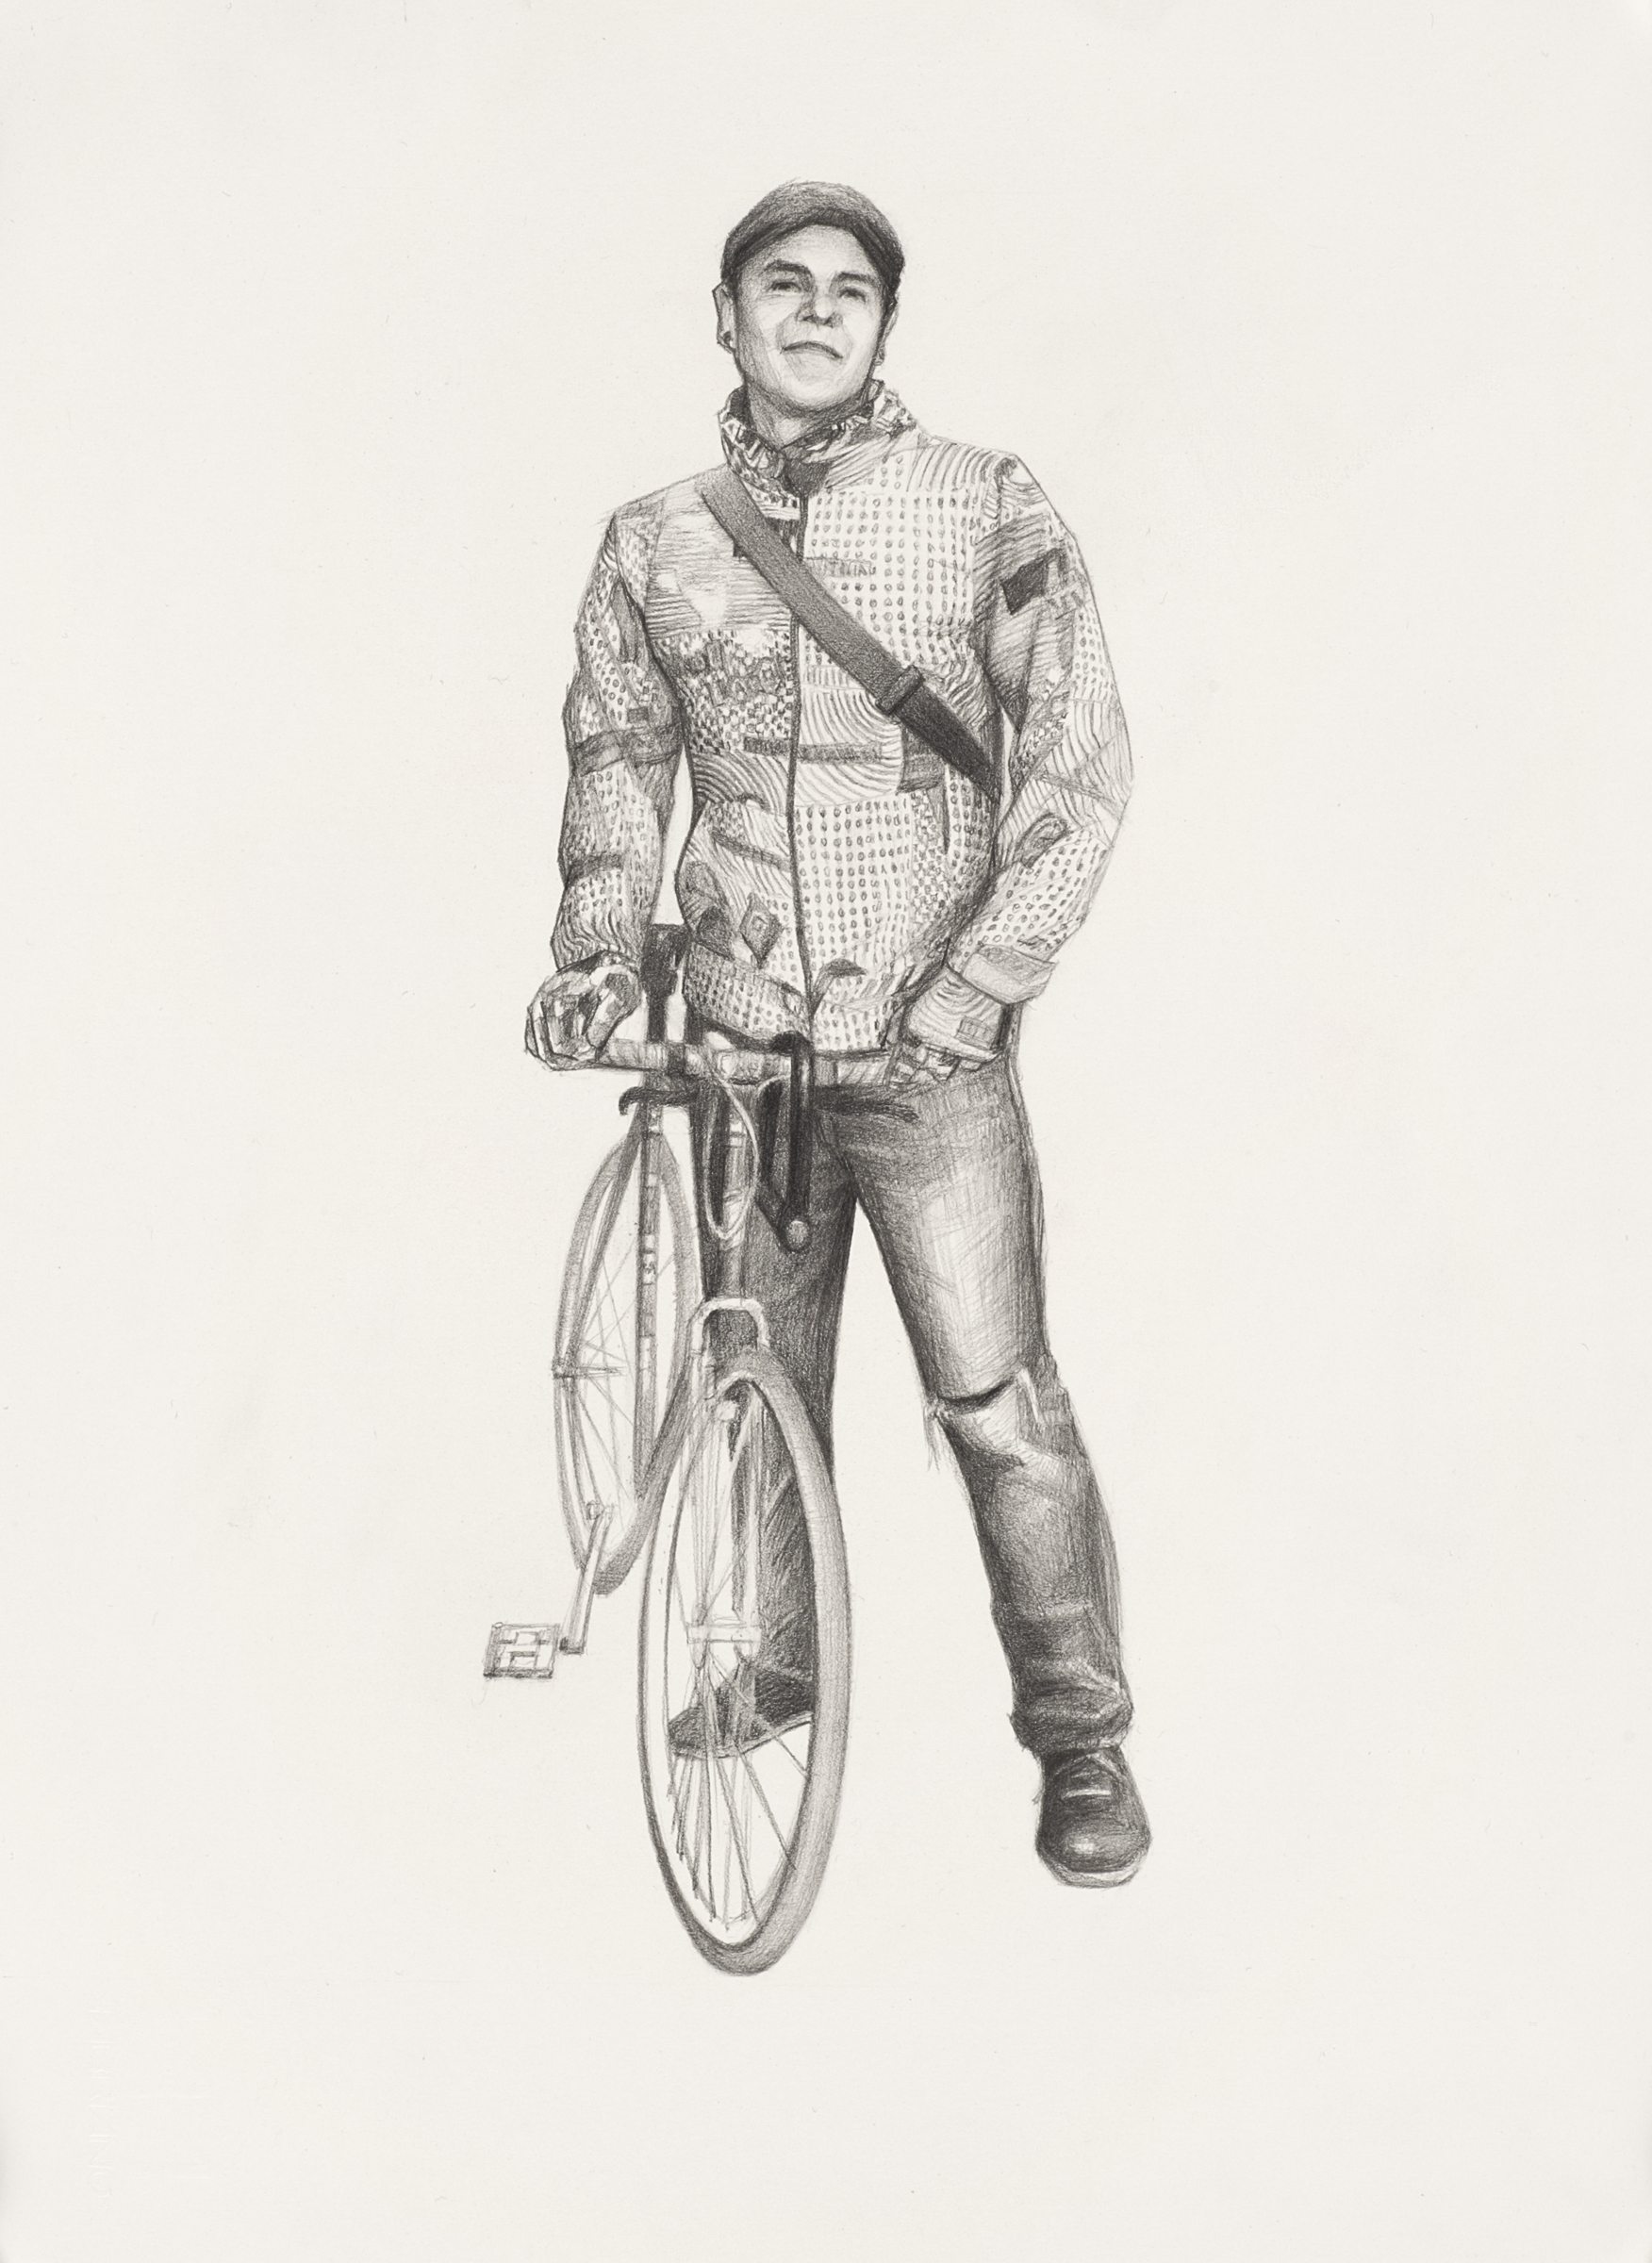 "Indie the Bike Guy with the Crazy Jacket pencil on paper, 10"" x 5.5"""